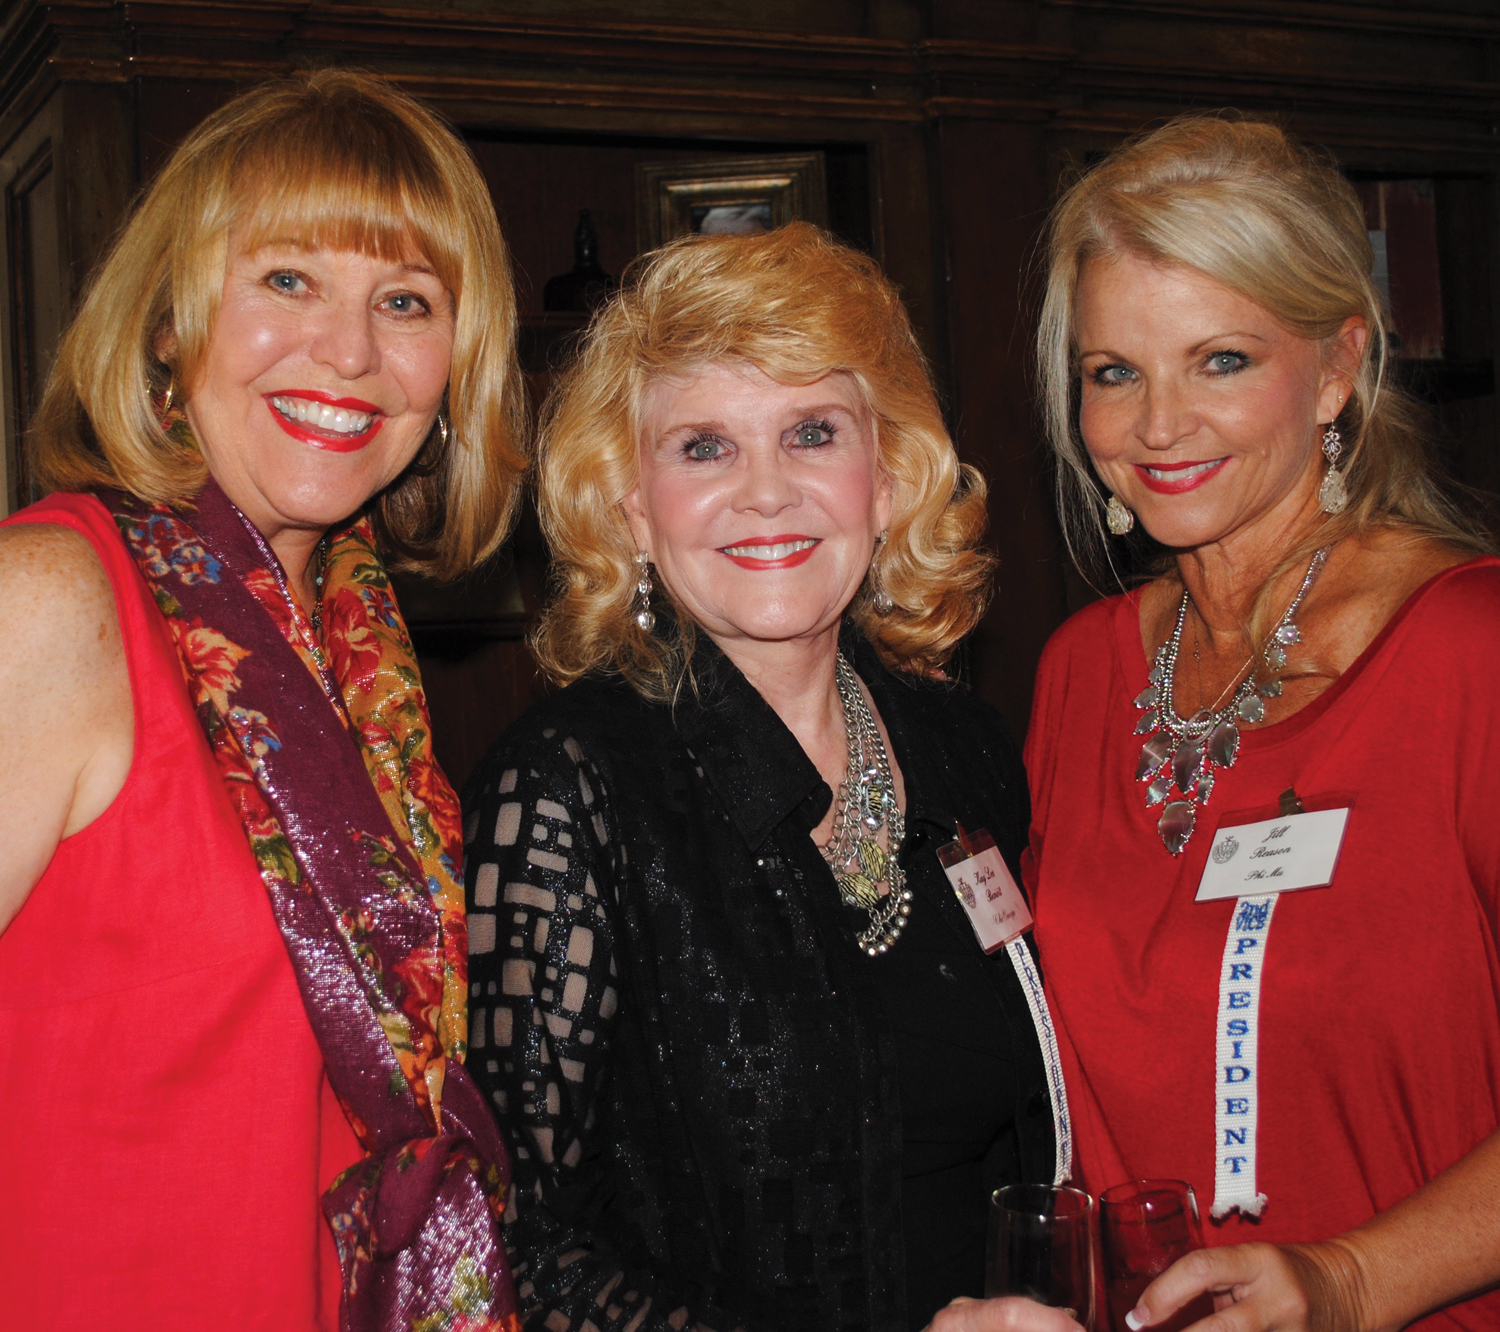 Clear Lake Panhellenic President Kay Lee Benoit, center, was at the door to welcome members to their annual Fall Friendship Tea, along with Jo Nell Hunter, left, and Second Vice President Jill Reason